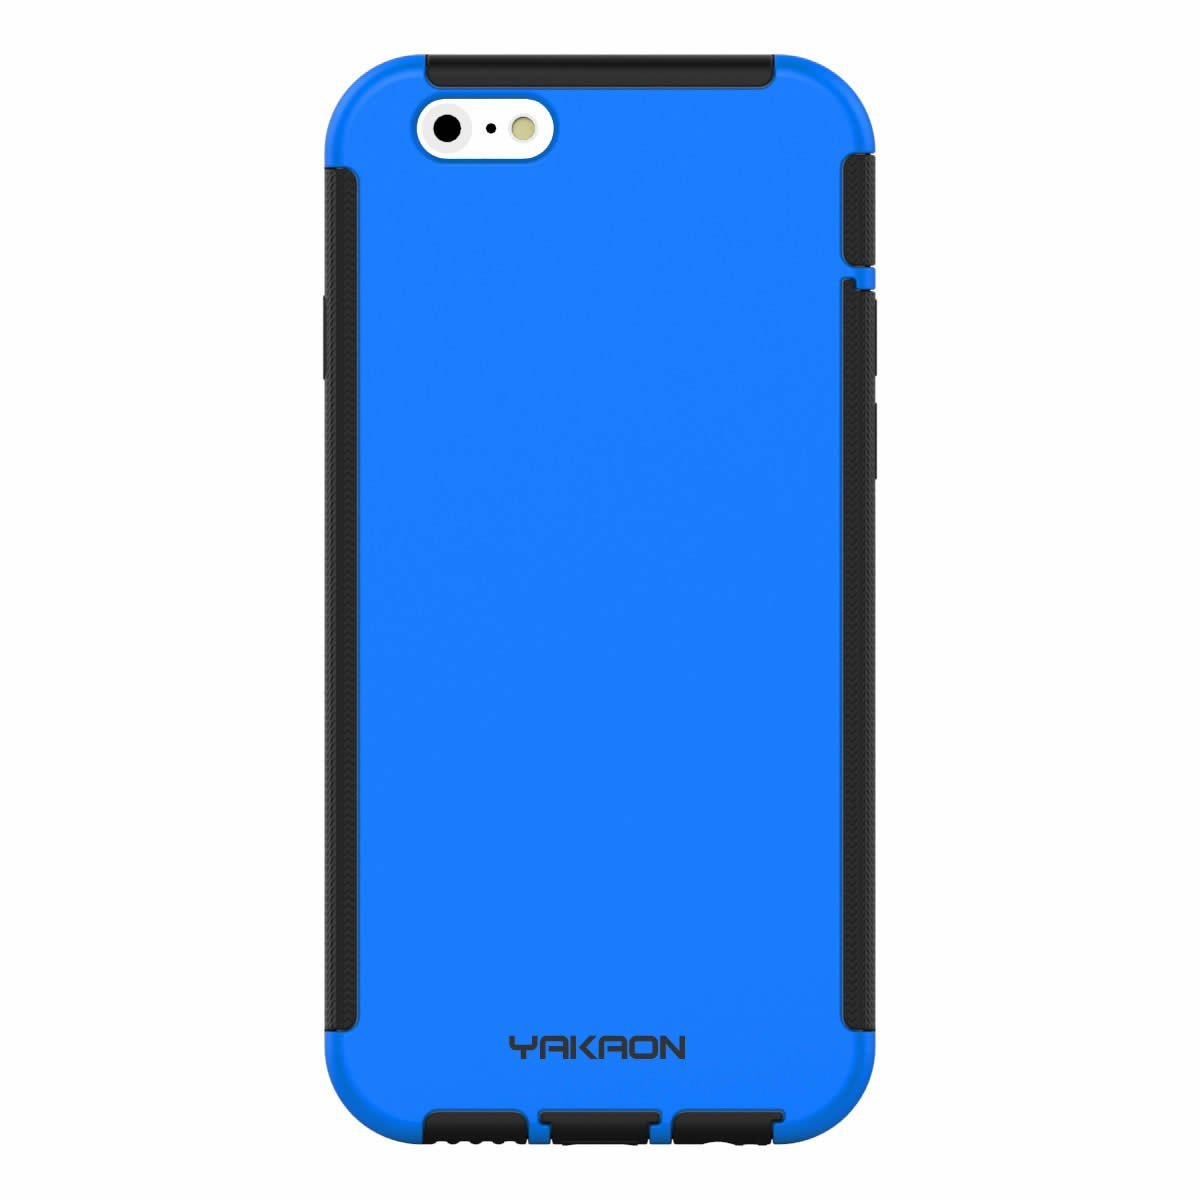 Durable Shatterproof, Dustproof, Shockproof Protective Case for iPhone 5S blue